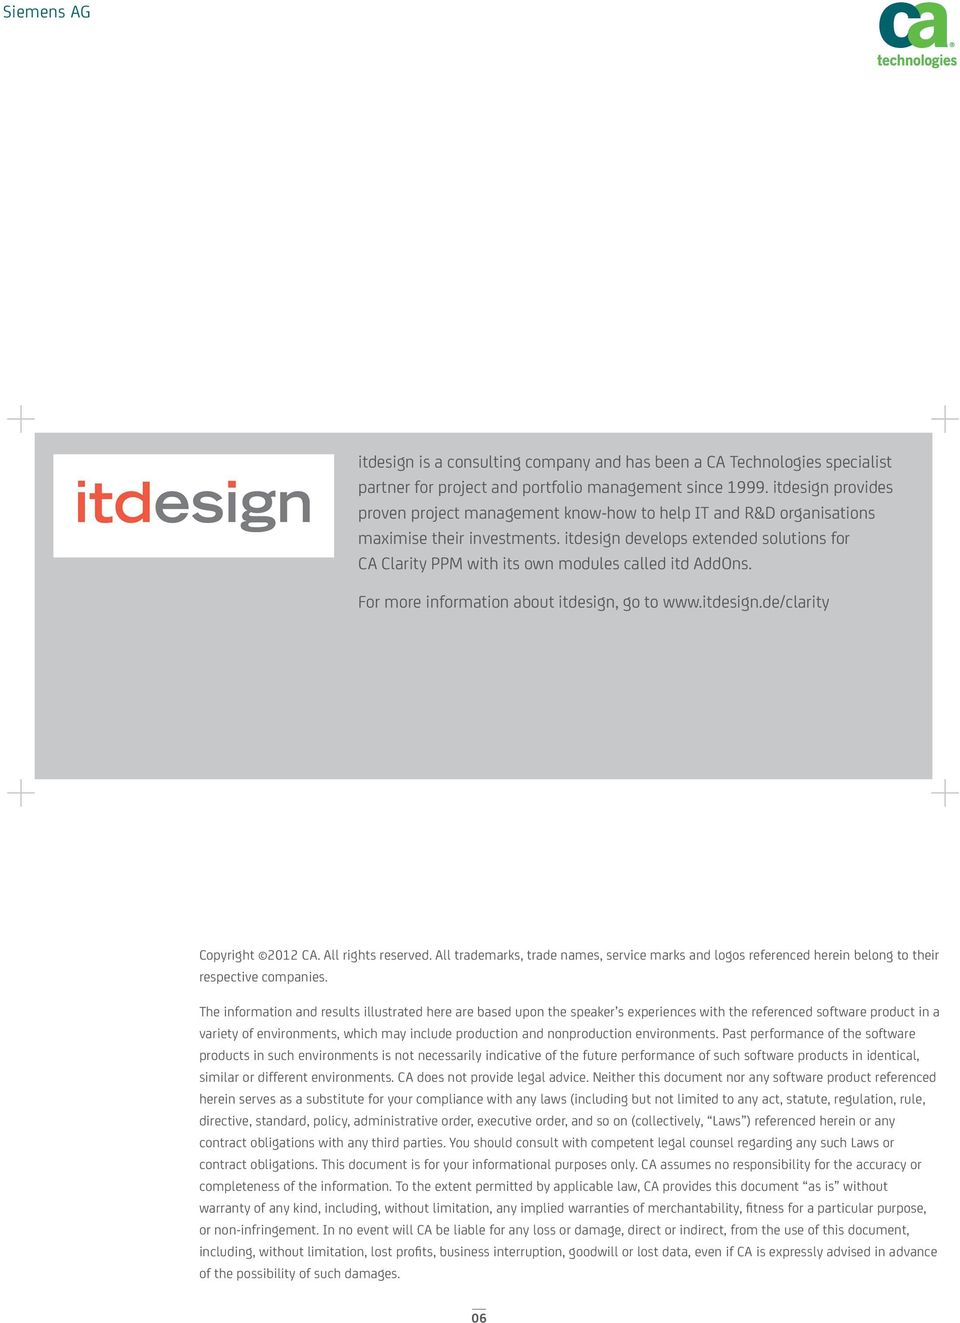 itdesign develops extended solutions for CA Clarity PPM with its own modules called itd AddOns. For more information about itdesign, go to www.itdesign.de/clarity Copyright 2012 CA.